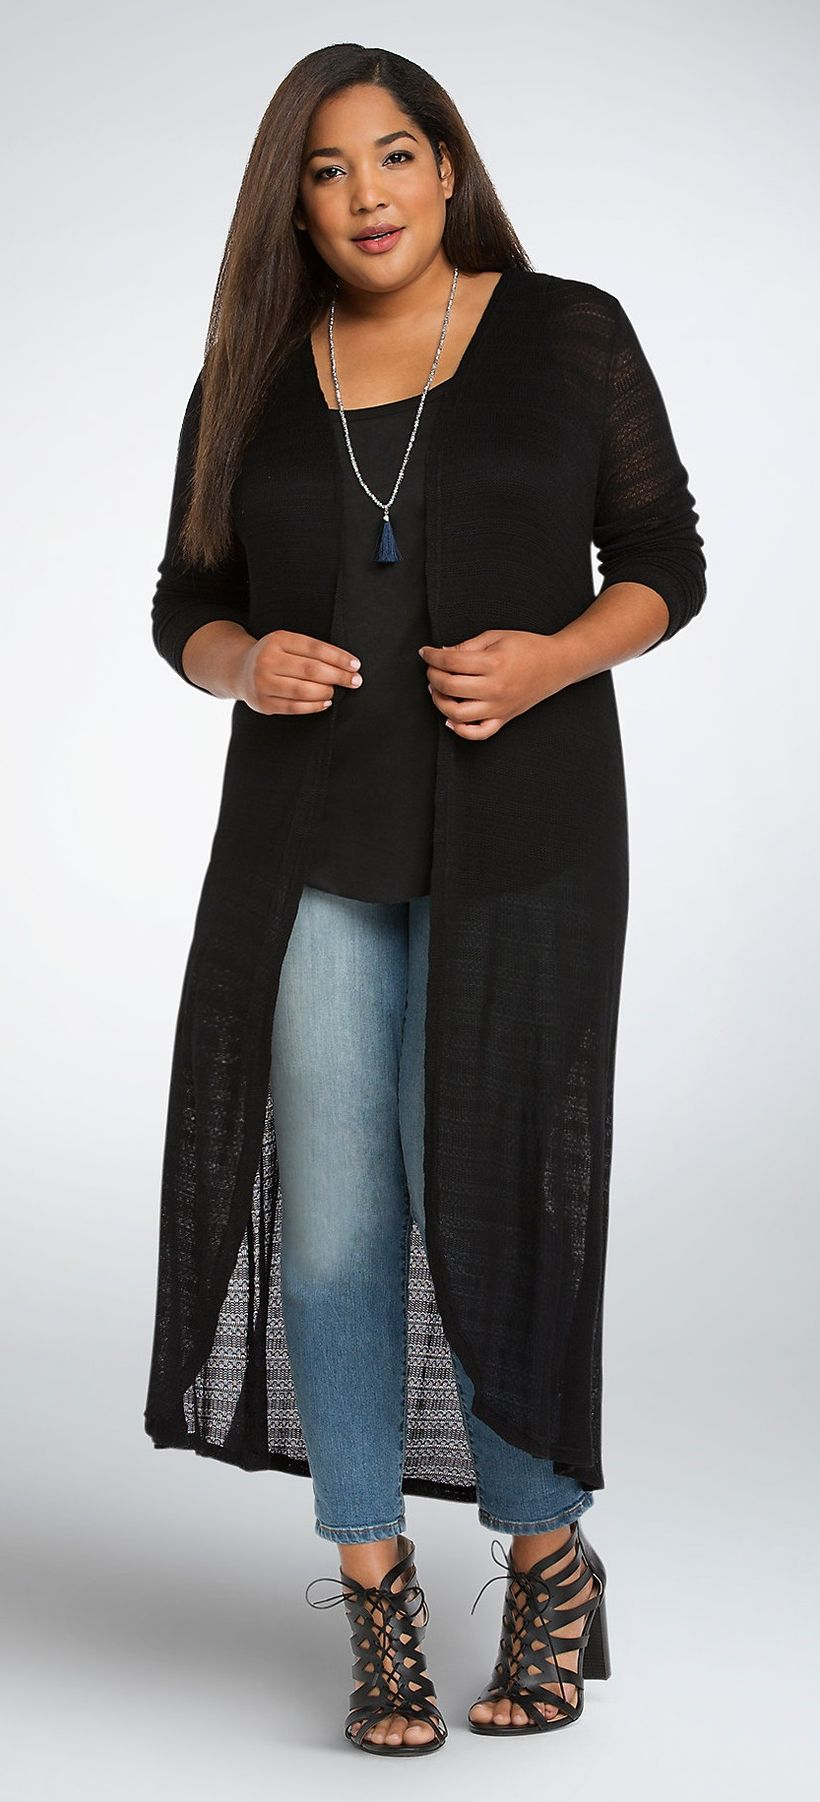 Stylish plus size outfits for winter 2017 46